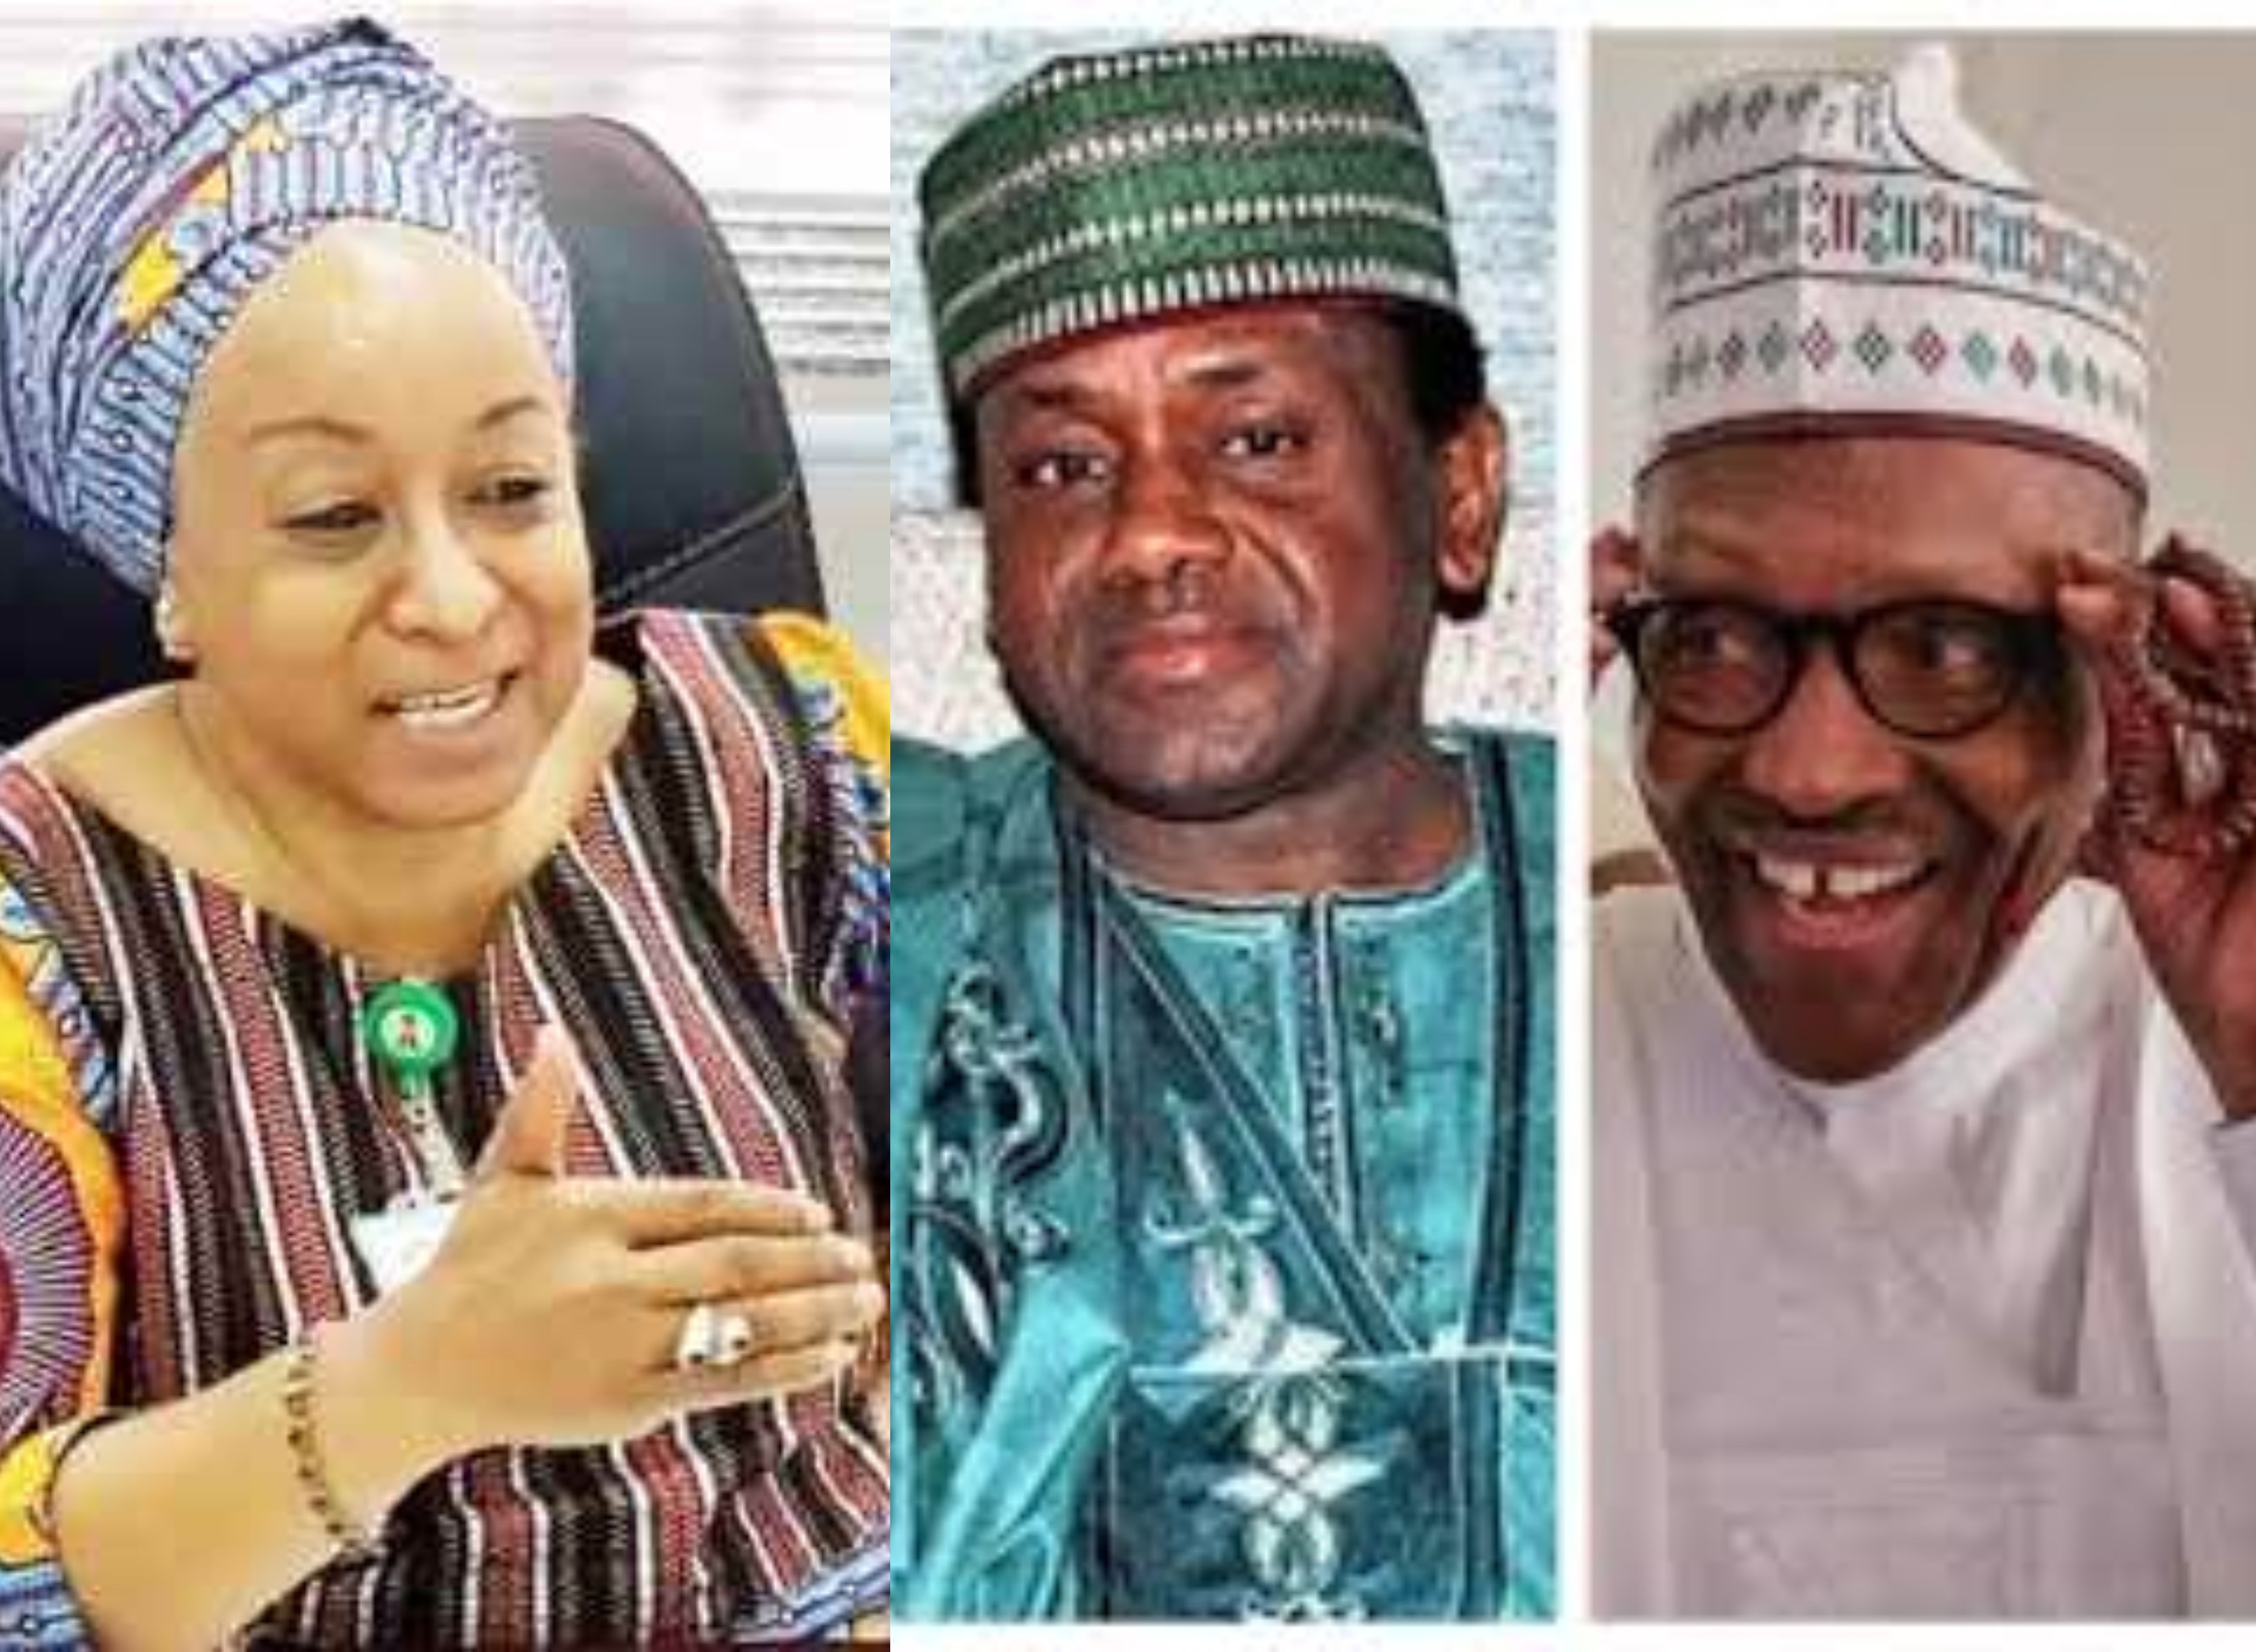 Abacha's Loot Was Spent On Lifting Nigerians Out Of Poverty - FG 3